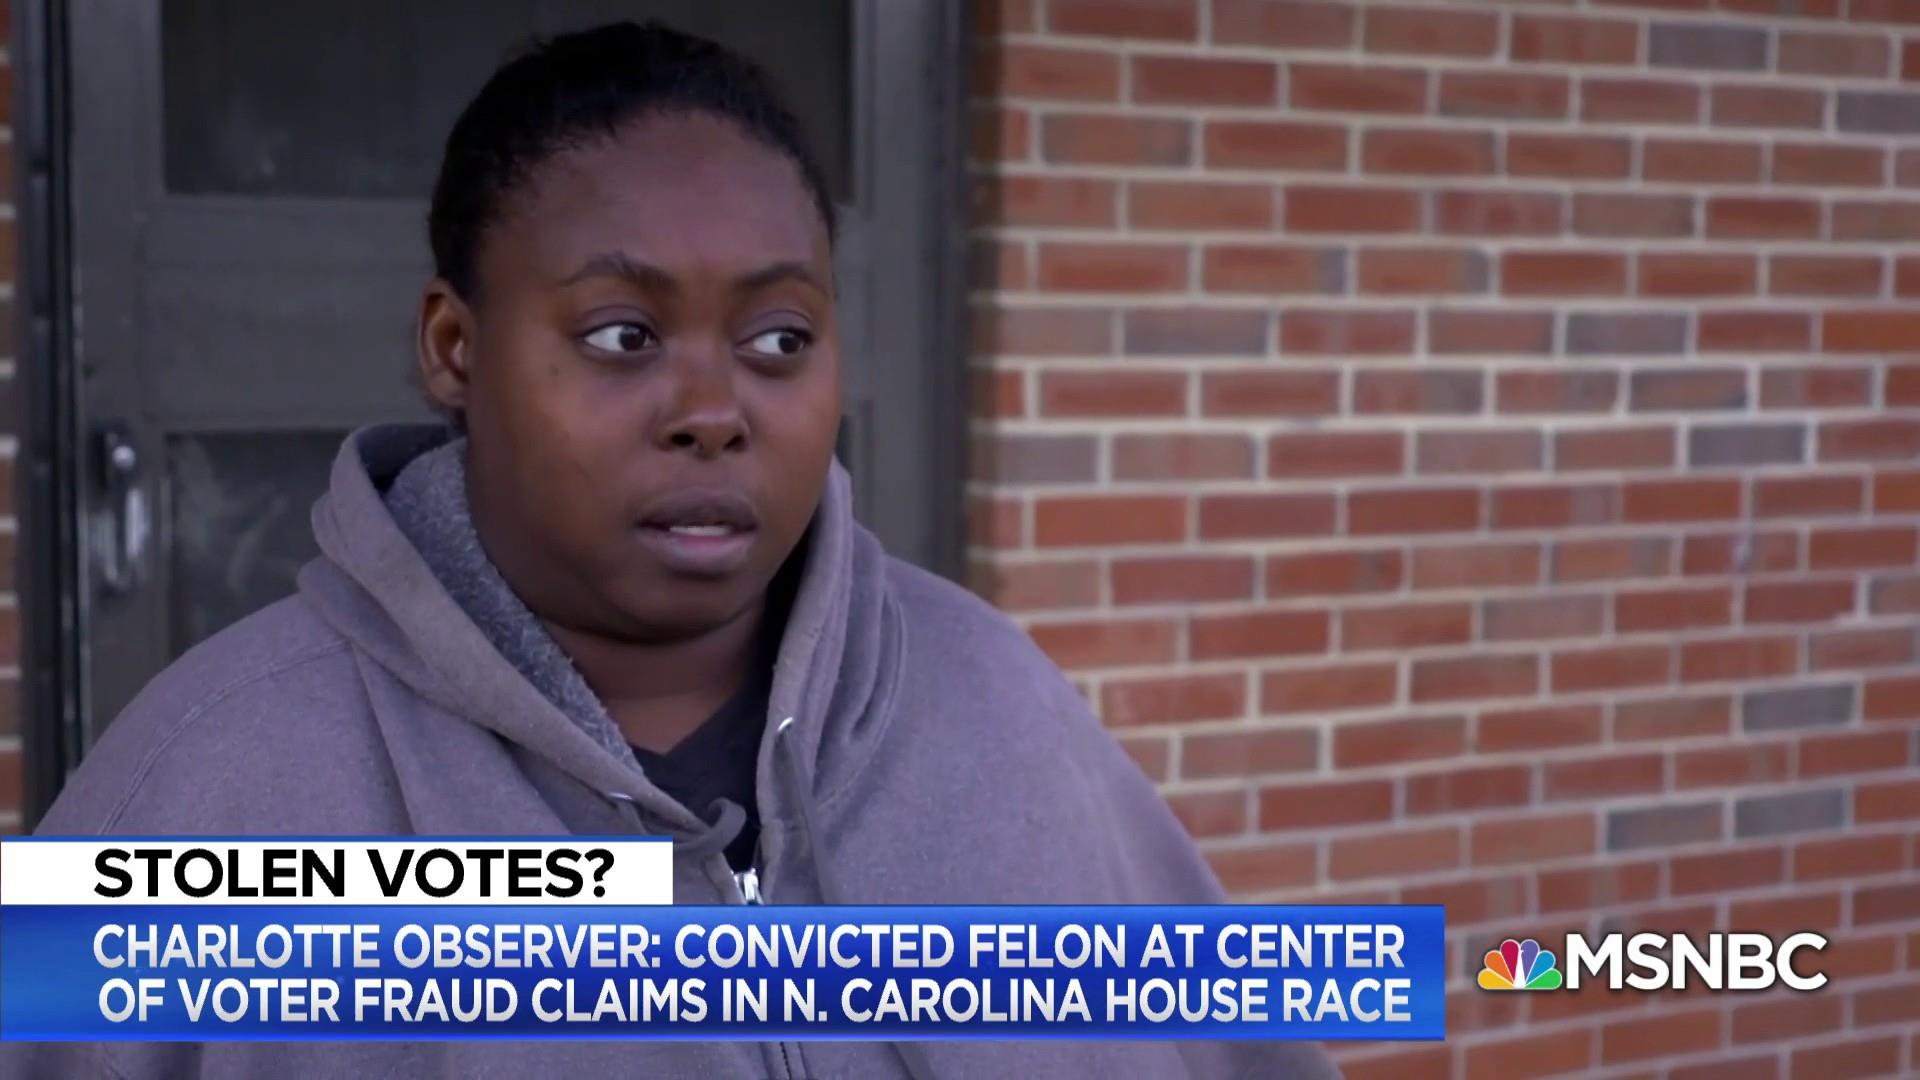 NC voter: Someone took my ballot